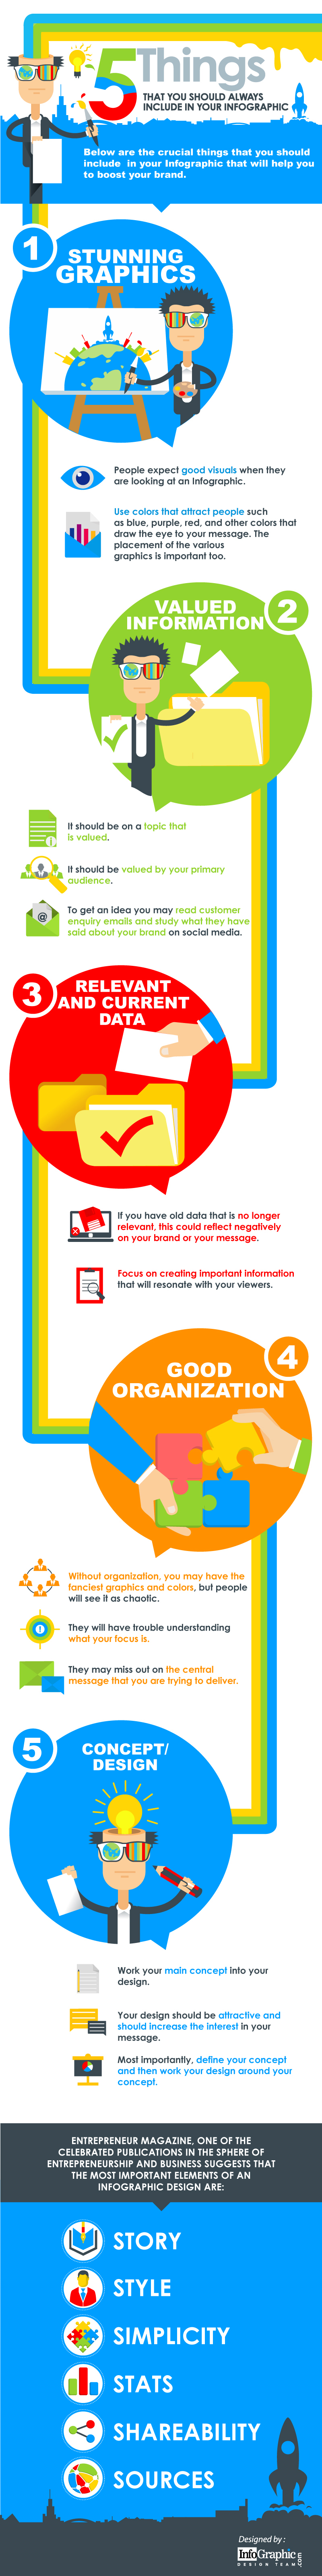 5 Things You Should Always Include in Your Infographic